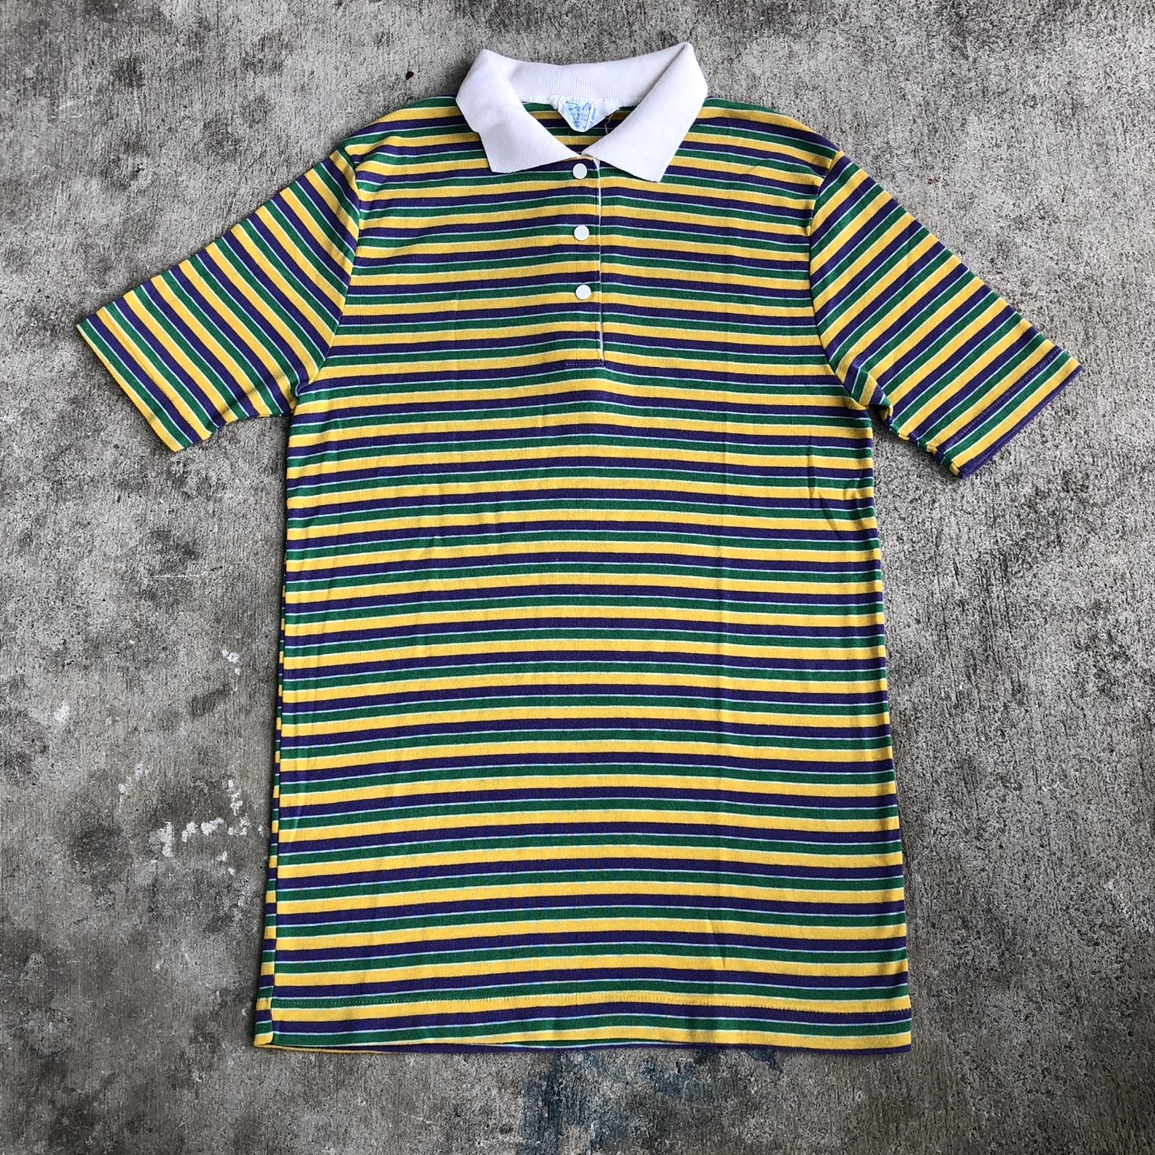 Product Image 1 - Vintage 1980s striped rugby shirt